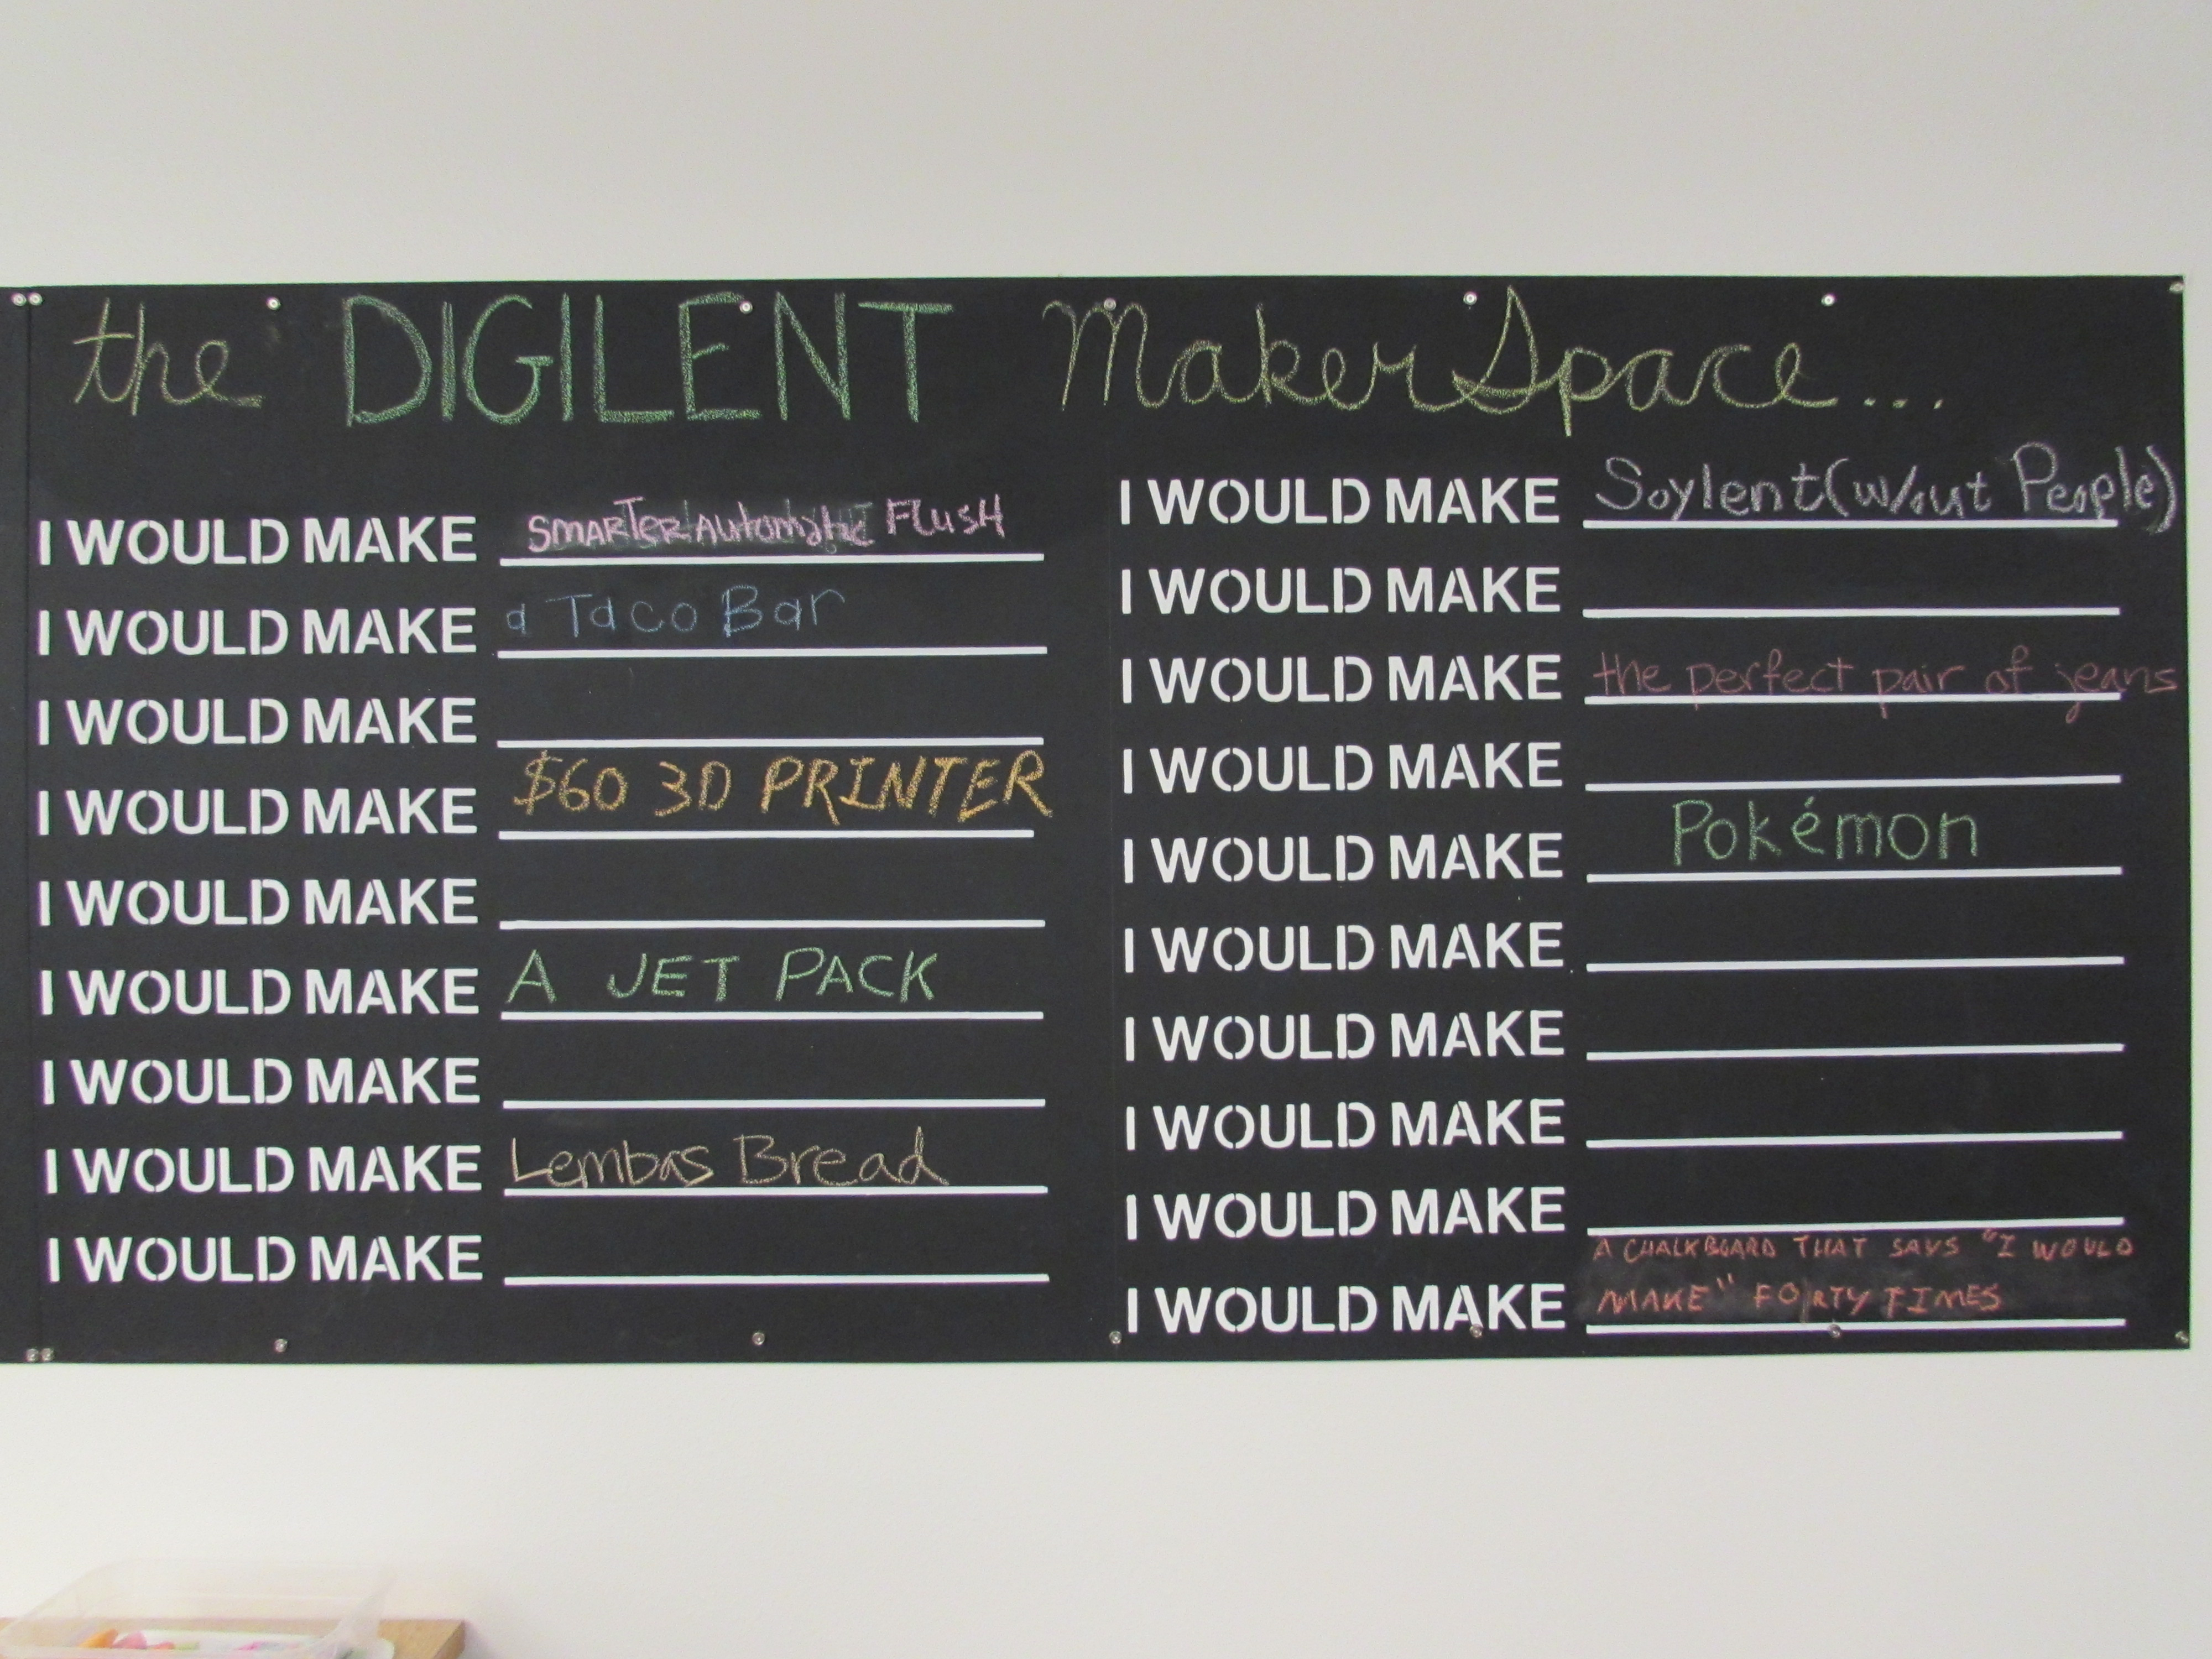 Right side of the two blackboards